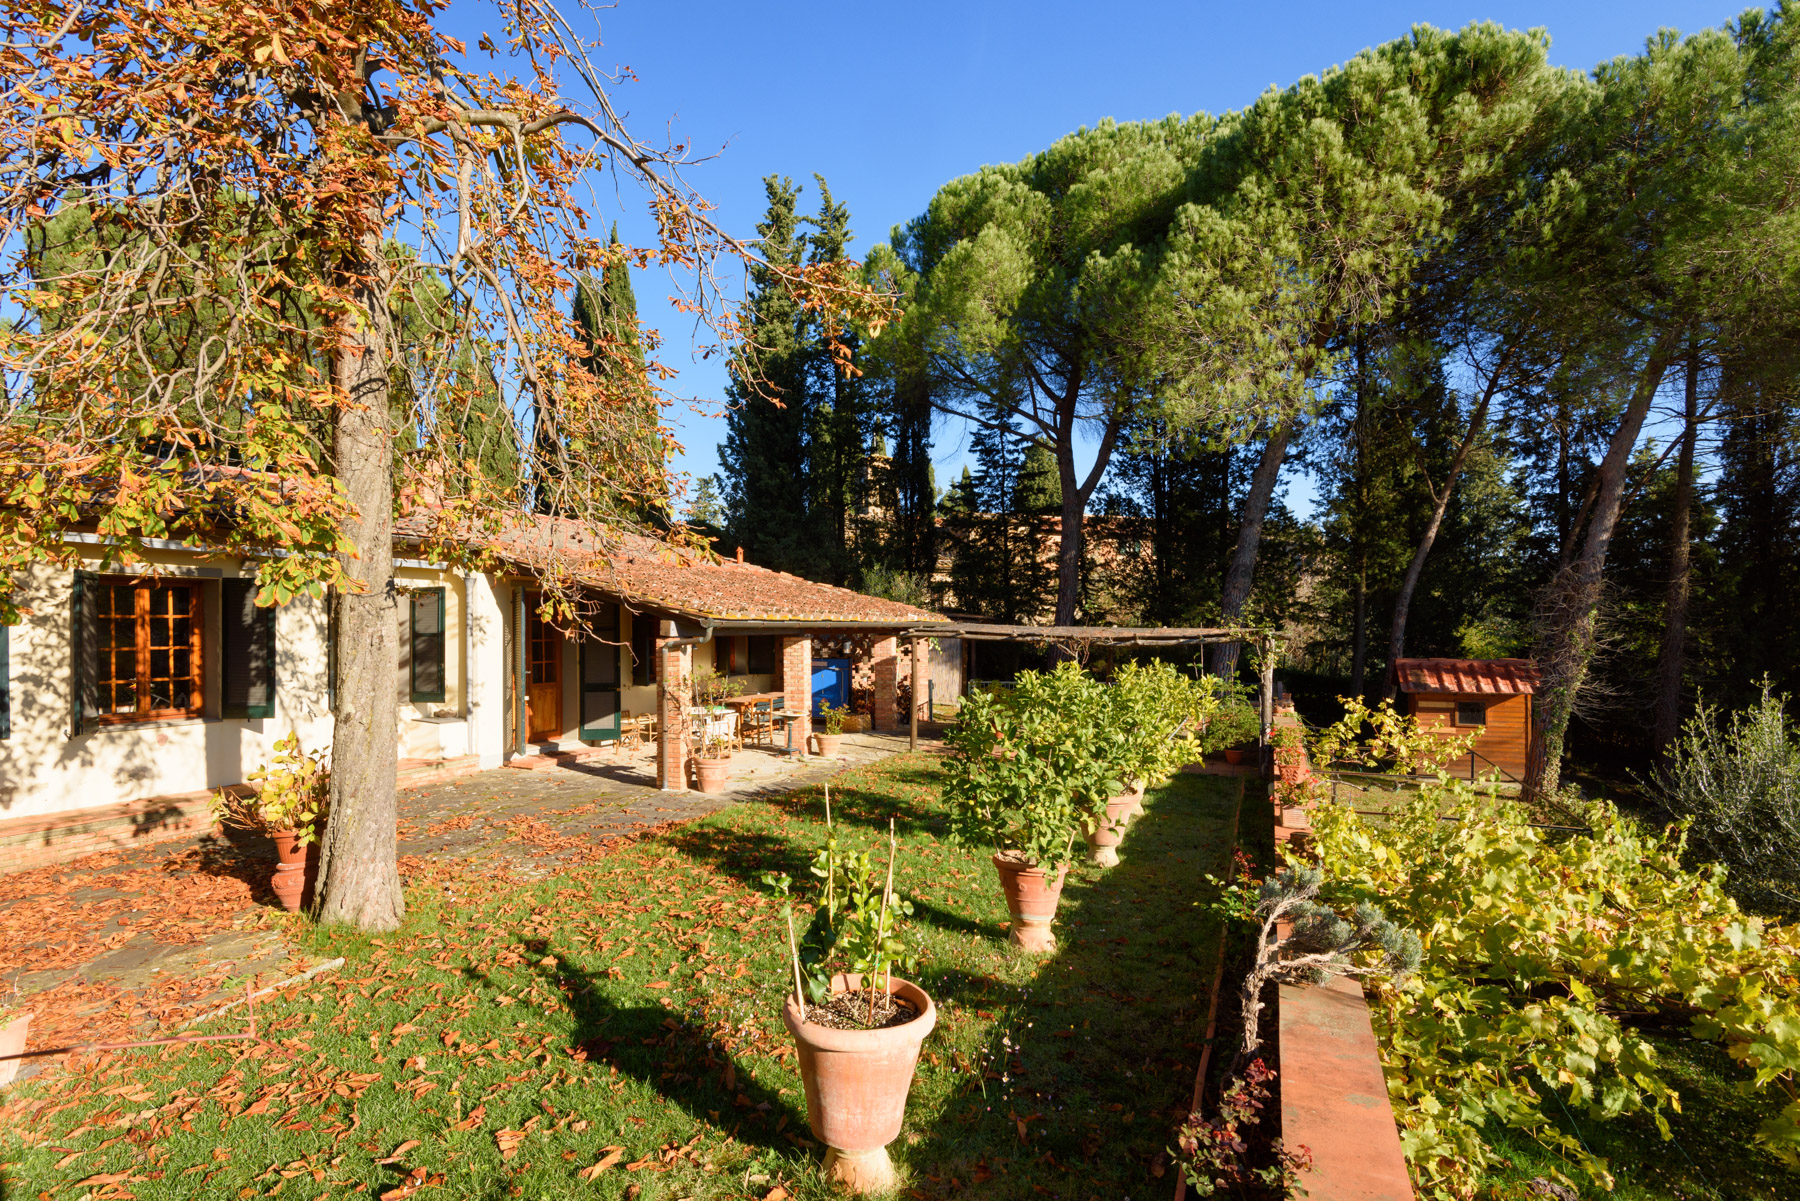 Single Family Home for Sale at Marvelous villa in the Chianti countryside Via di Pancole Greve In Chianti, 50022 Italy